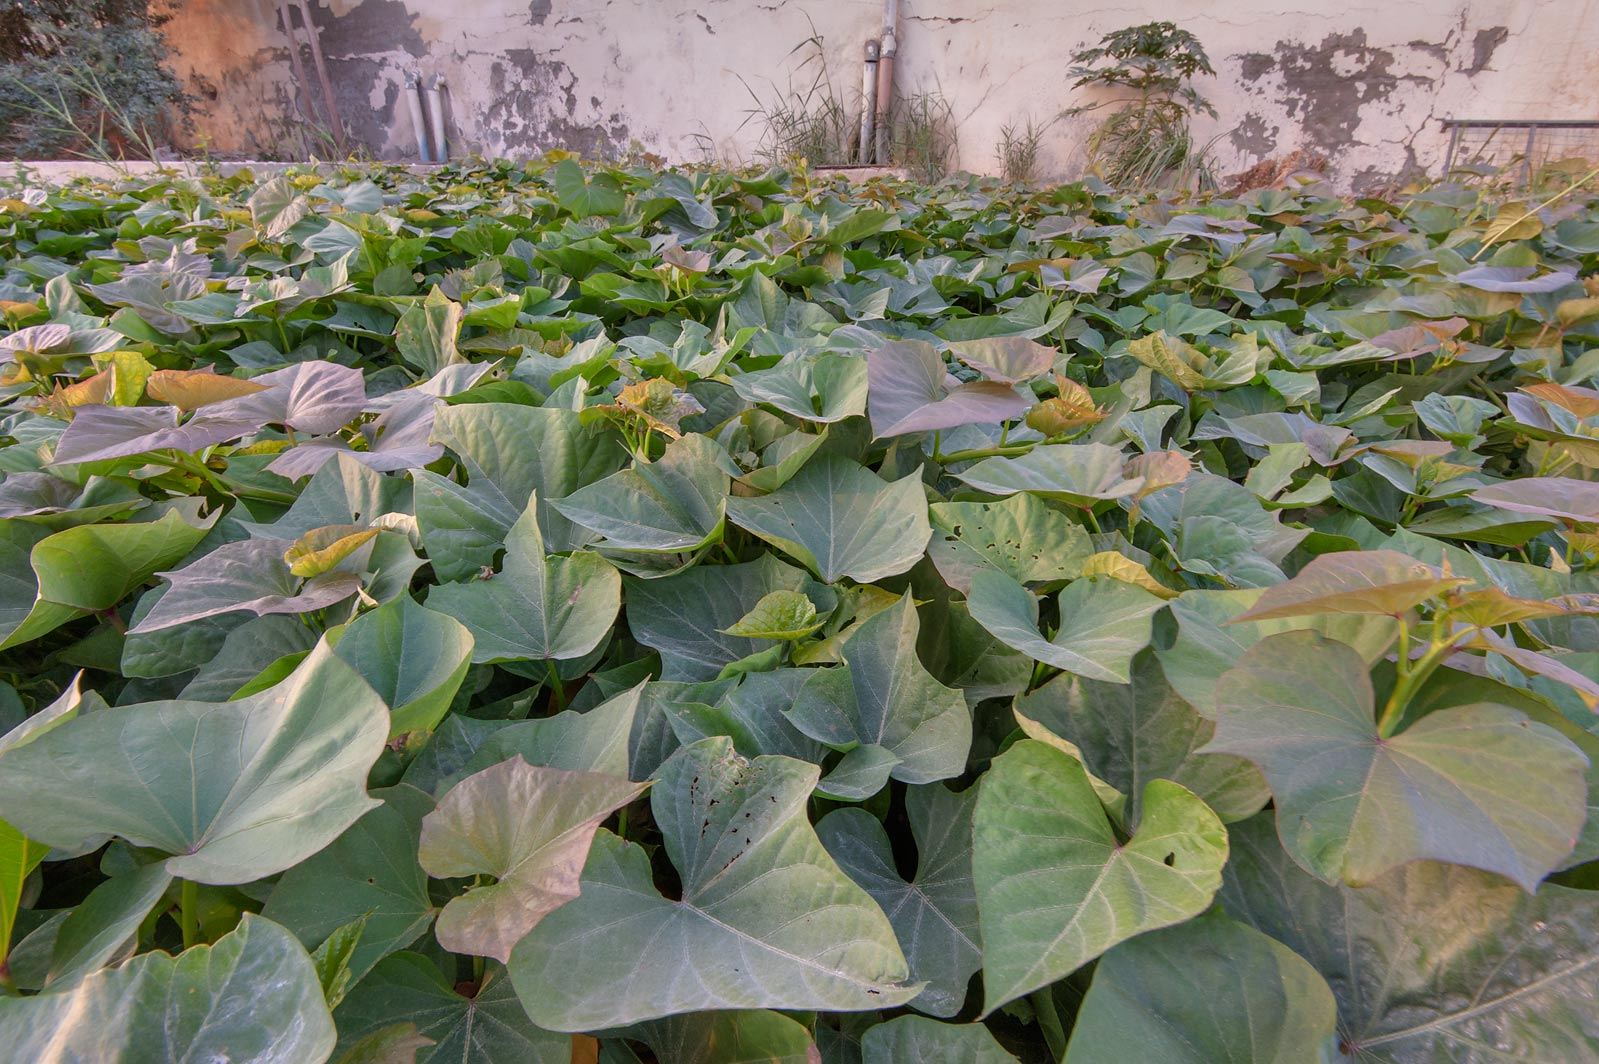 Leaves of cultivated sweet potato (Ipomoea...St. in Al Lejbailat area. Doha, Qatar